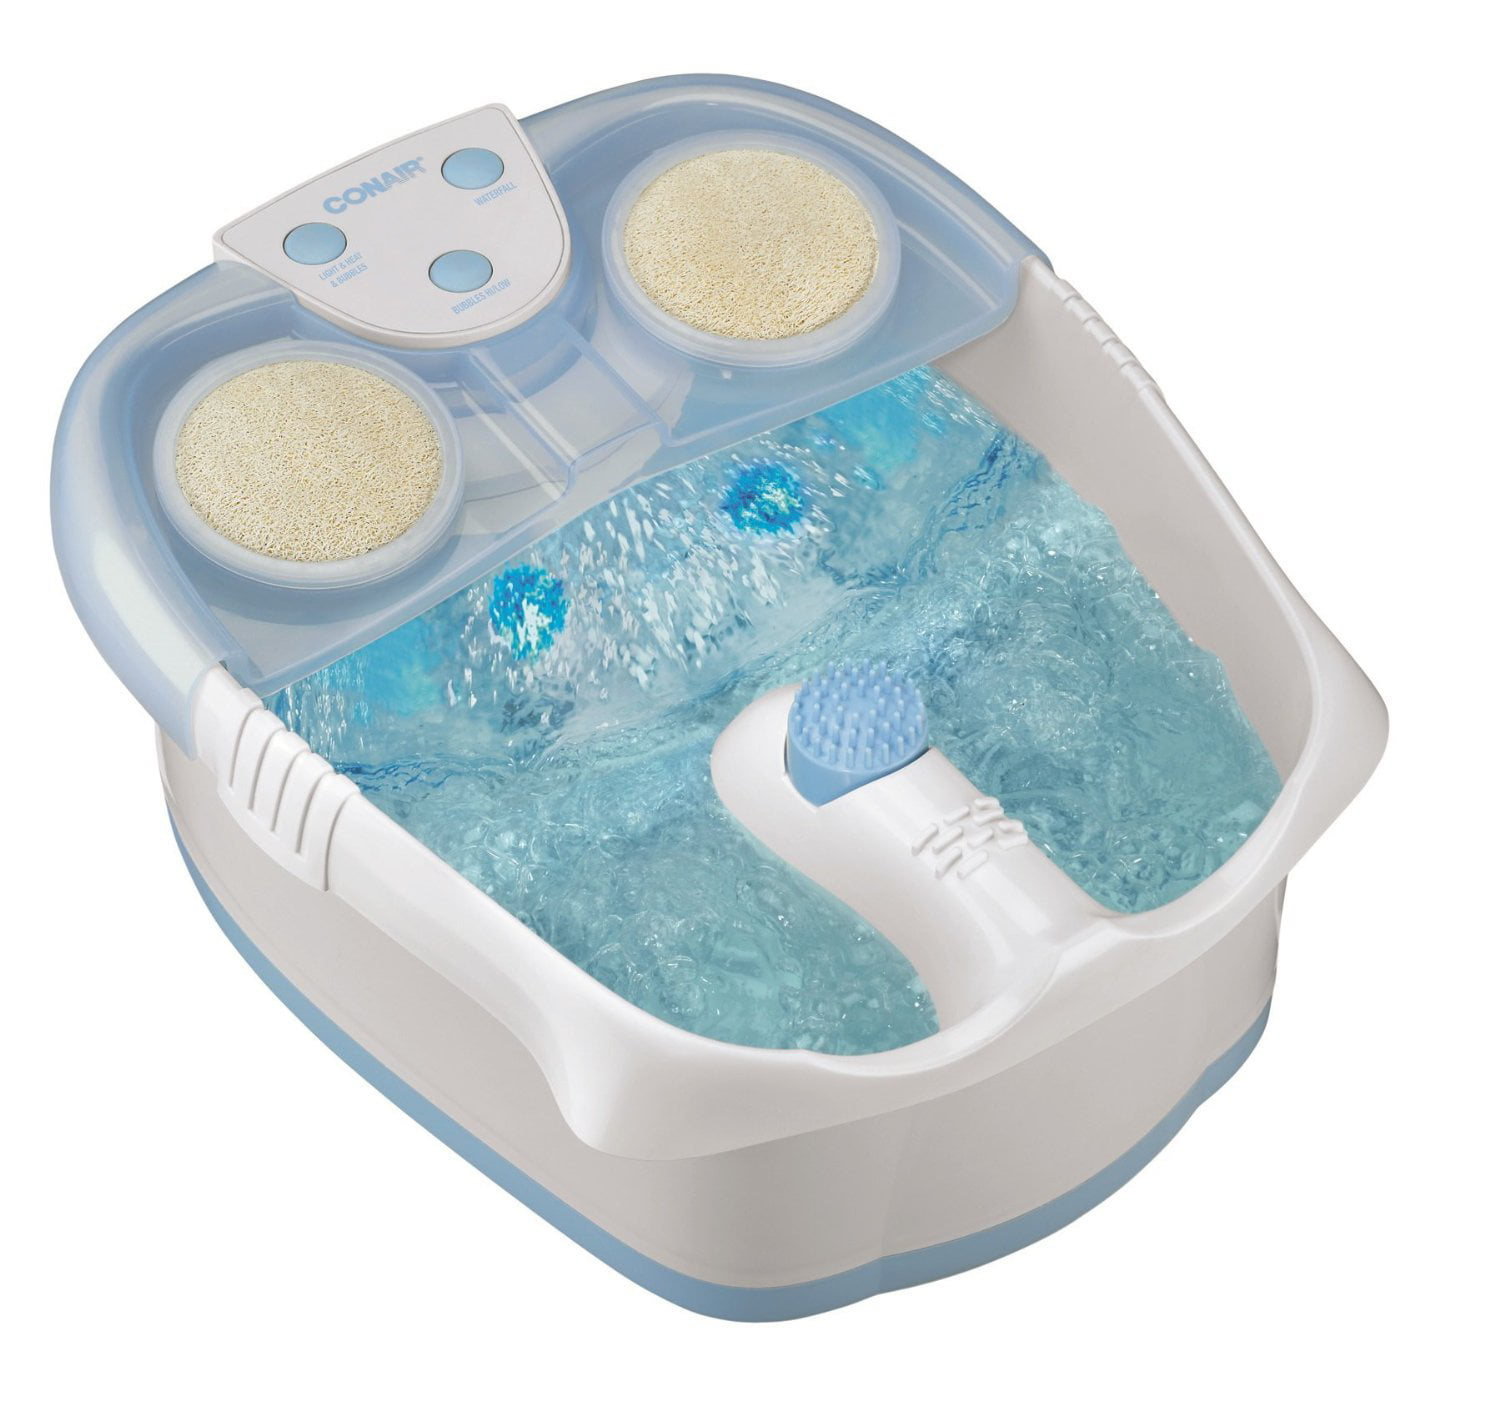 Conair Waterfall Foot Bath with Lights, Bubbles and Heat - Walmart.com